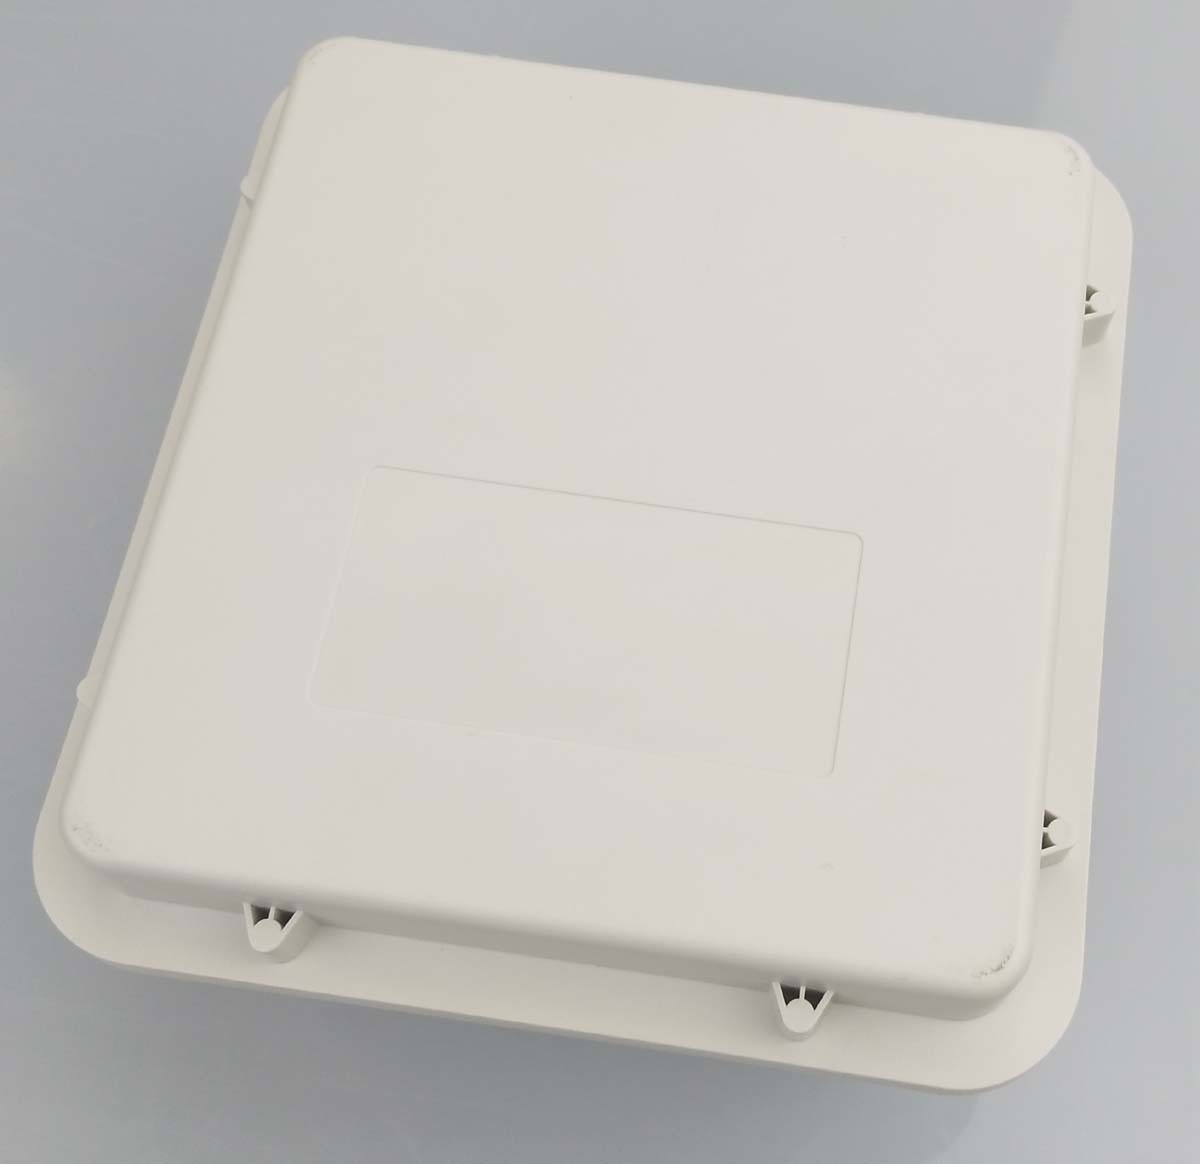 Industrial Outdoor Wireless WiFi Router with 10dBi High Gain Antenna pictures & photos